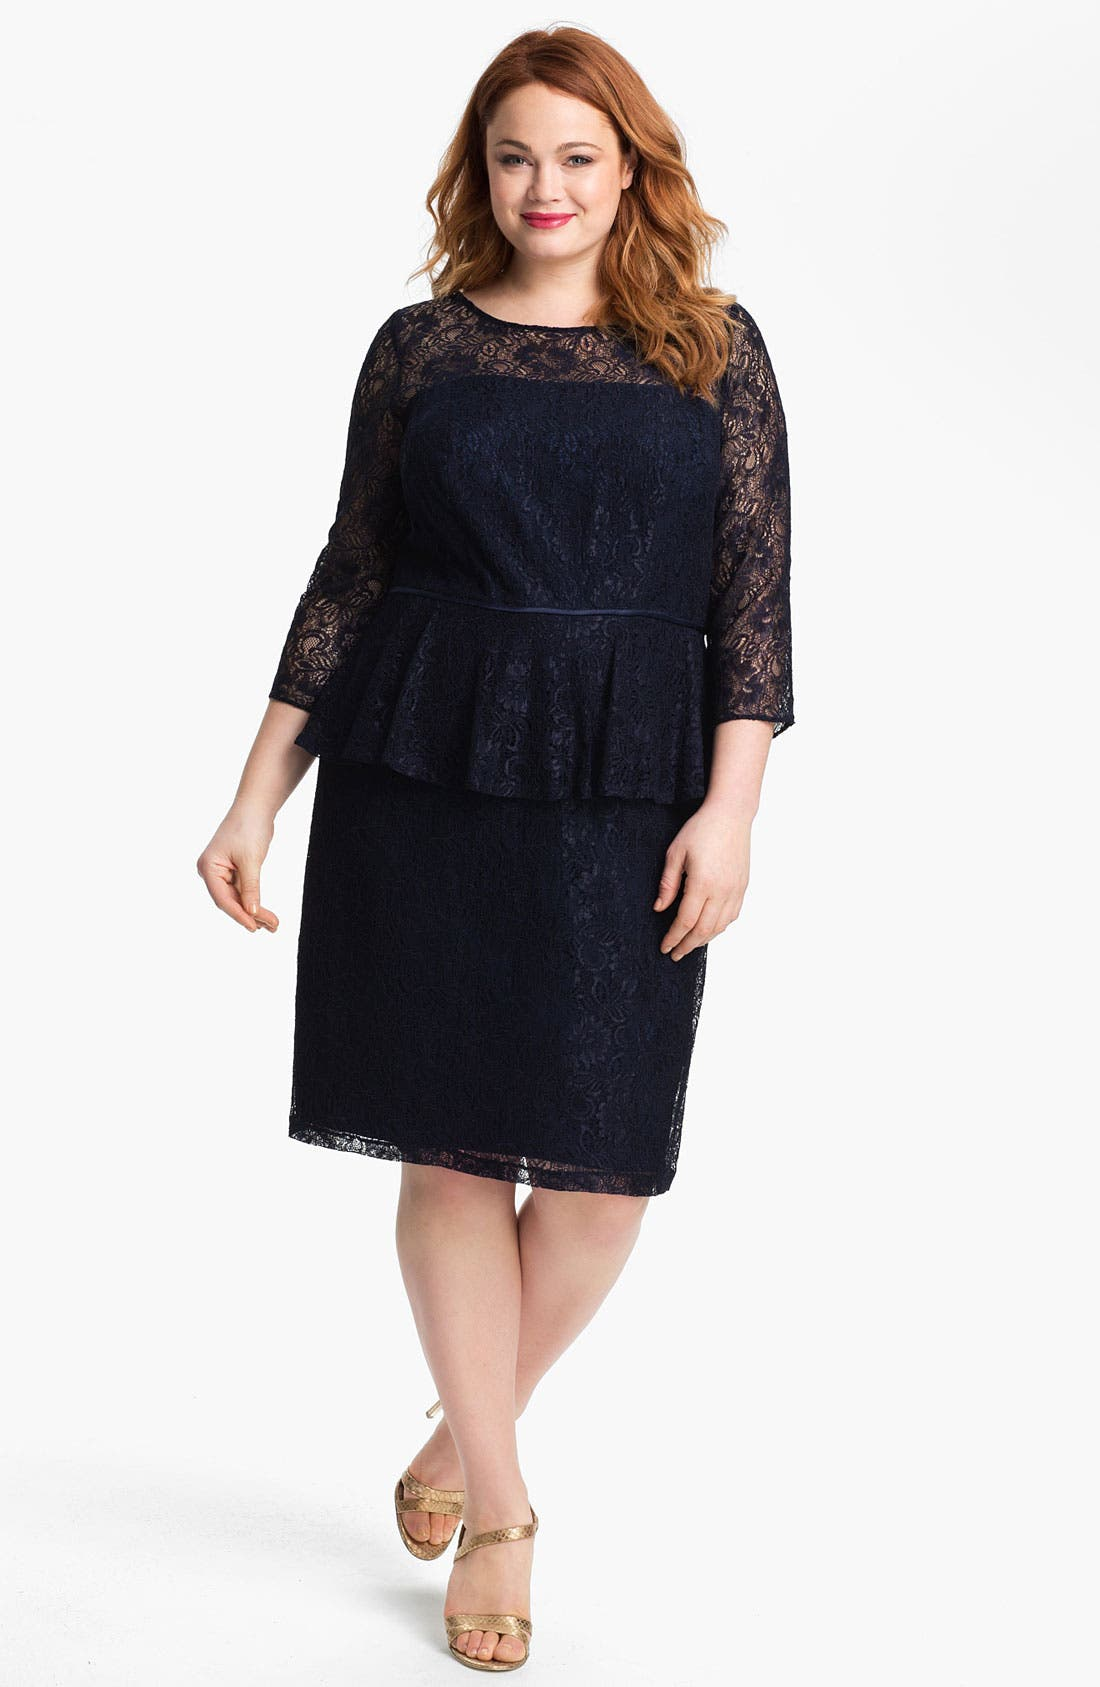 Alternate Image 1 Selected - Adrianna Papell Lace Peplum Dress (Plus)